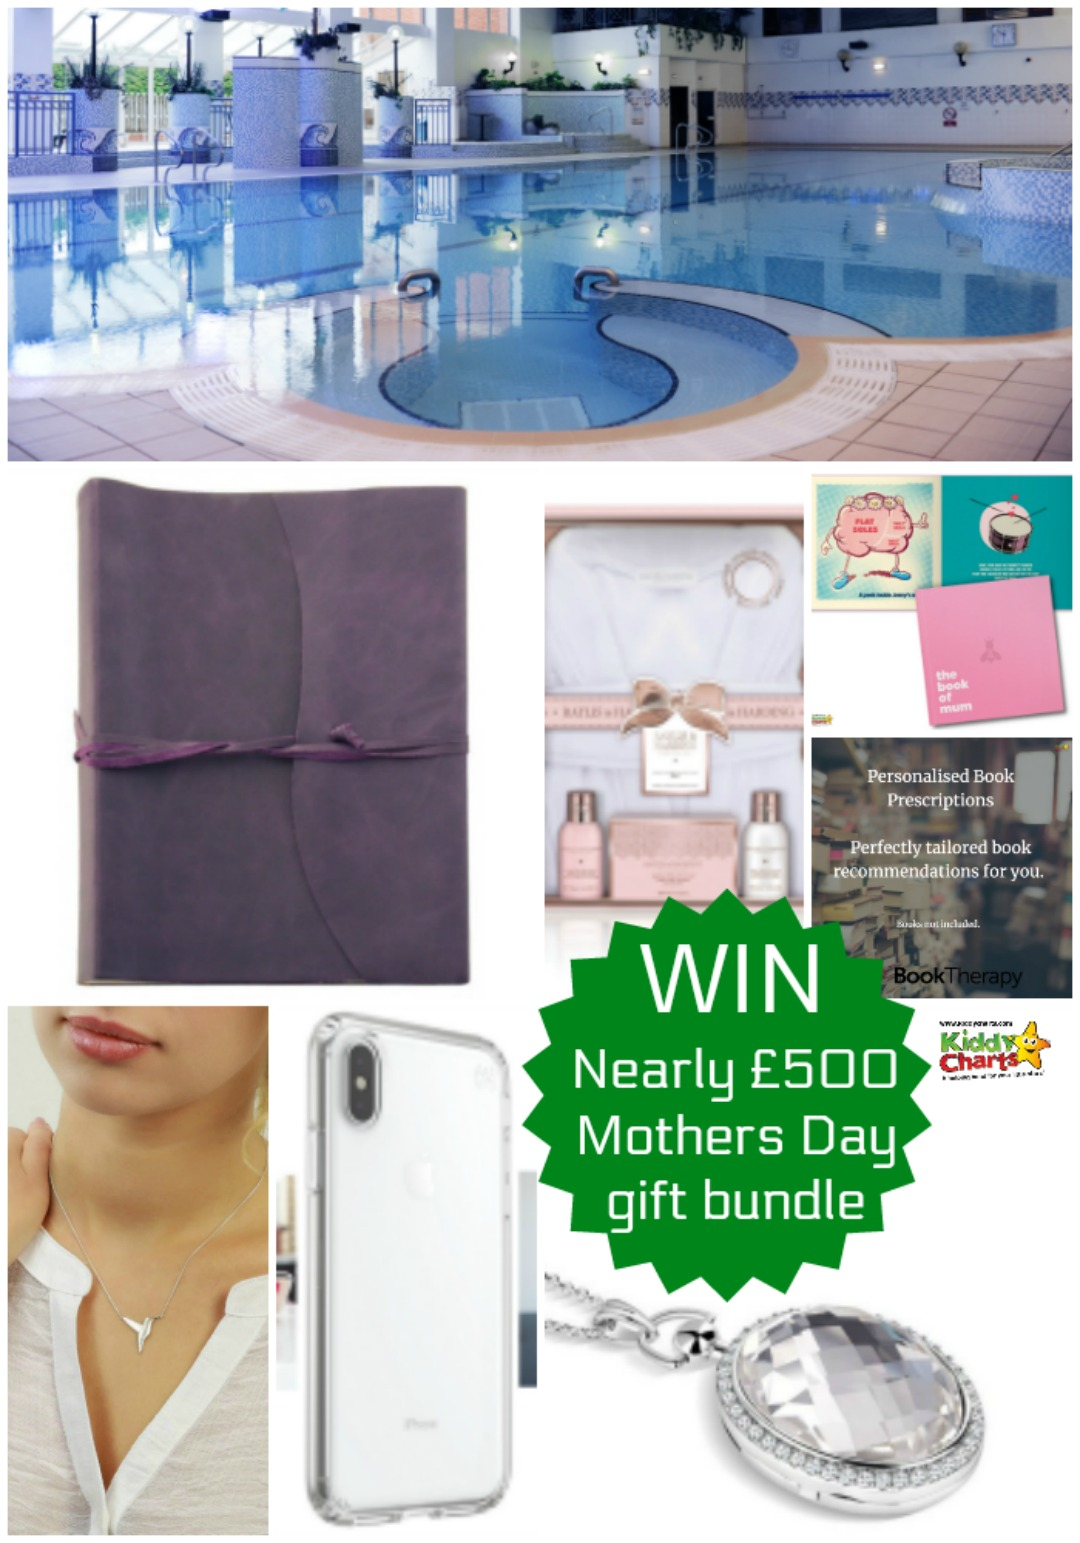 Fabulous Mother Day gift guide (and giveaway if you are coming before 25th March 2019), but don't worry if not - fabulous Mothers Day ideas for you anyway! #mothersday #giftguide #gifts #giftideas #mothersdayideas #mothersdaygifts